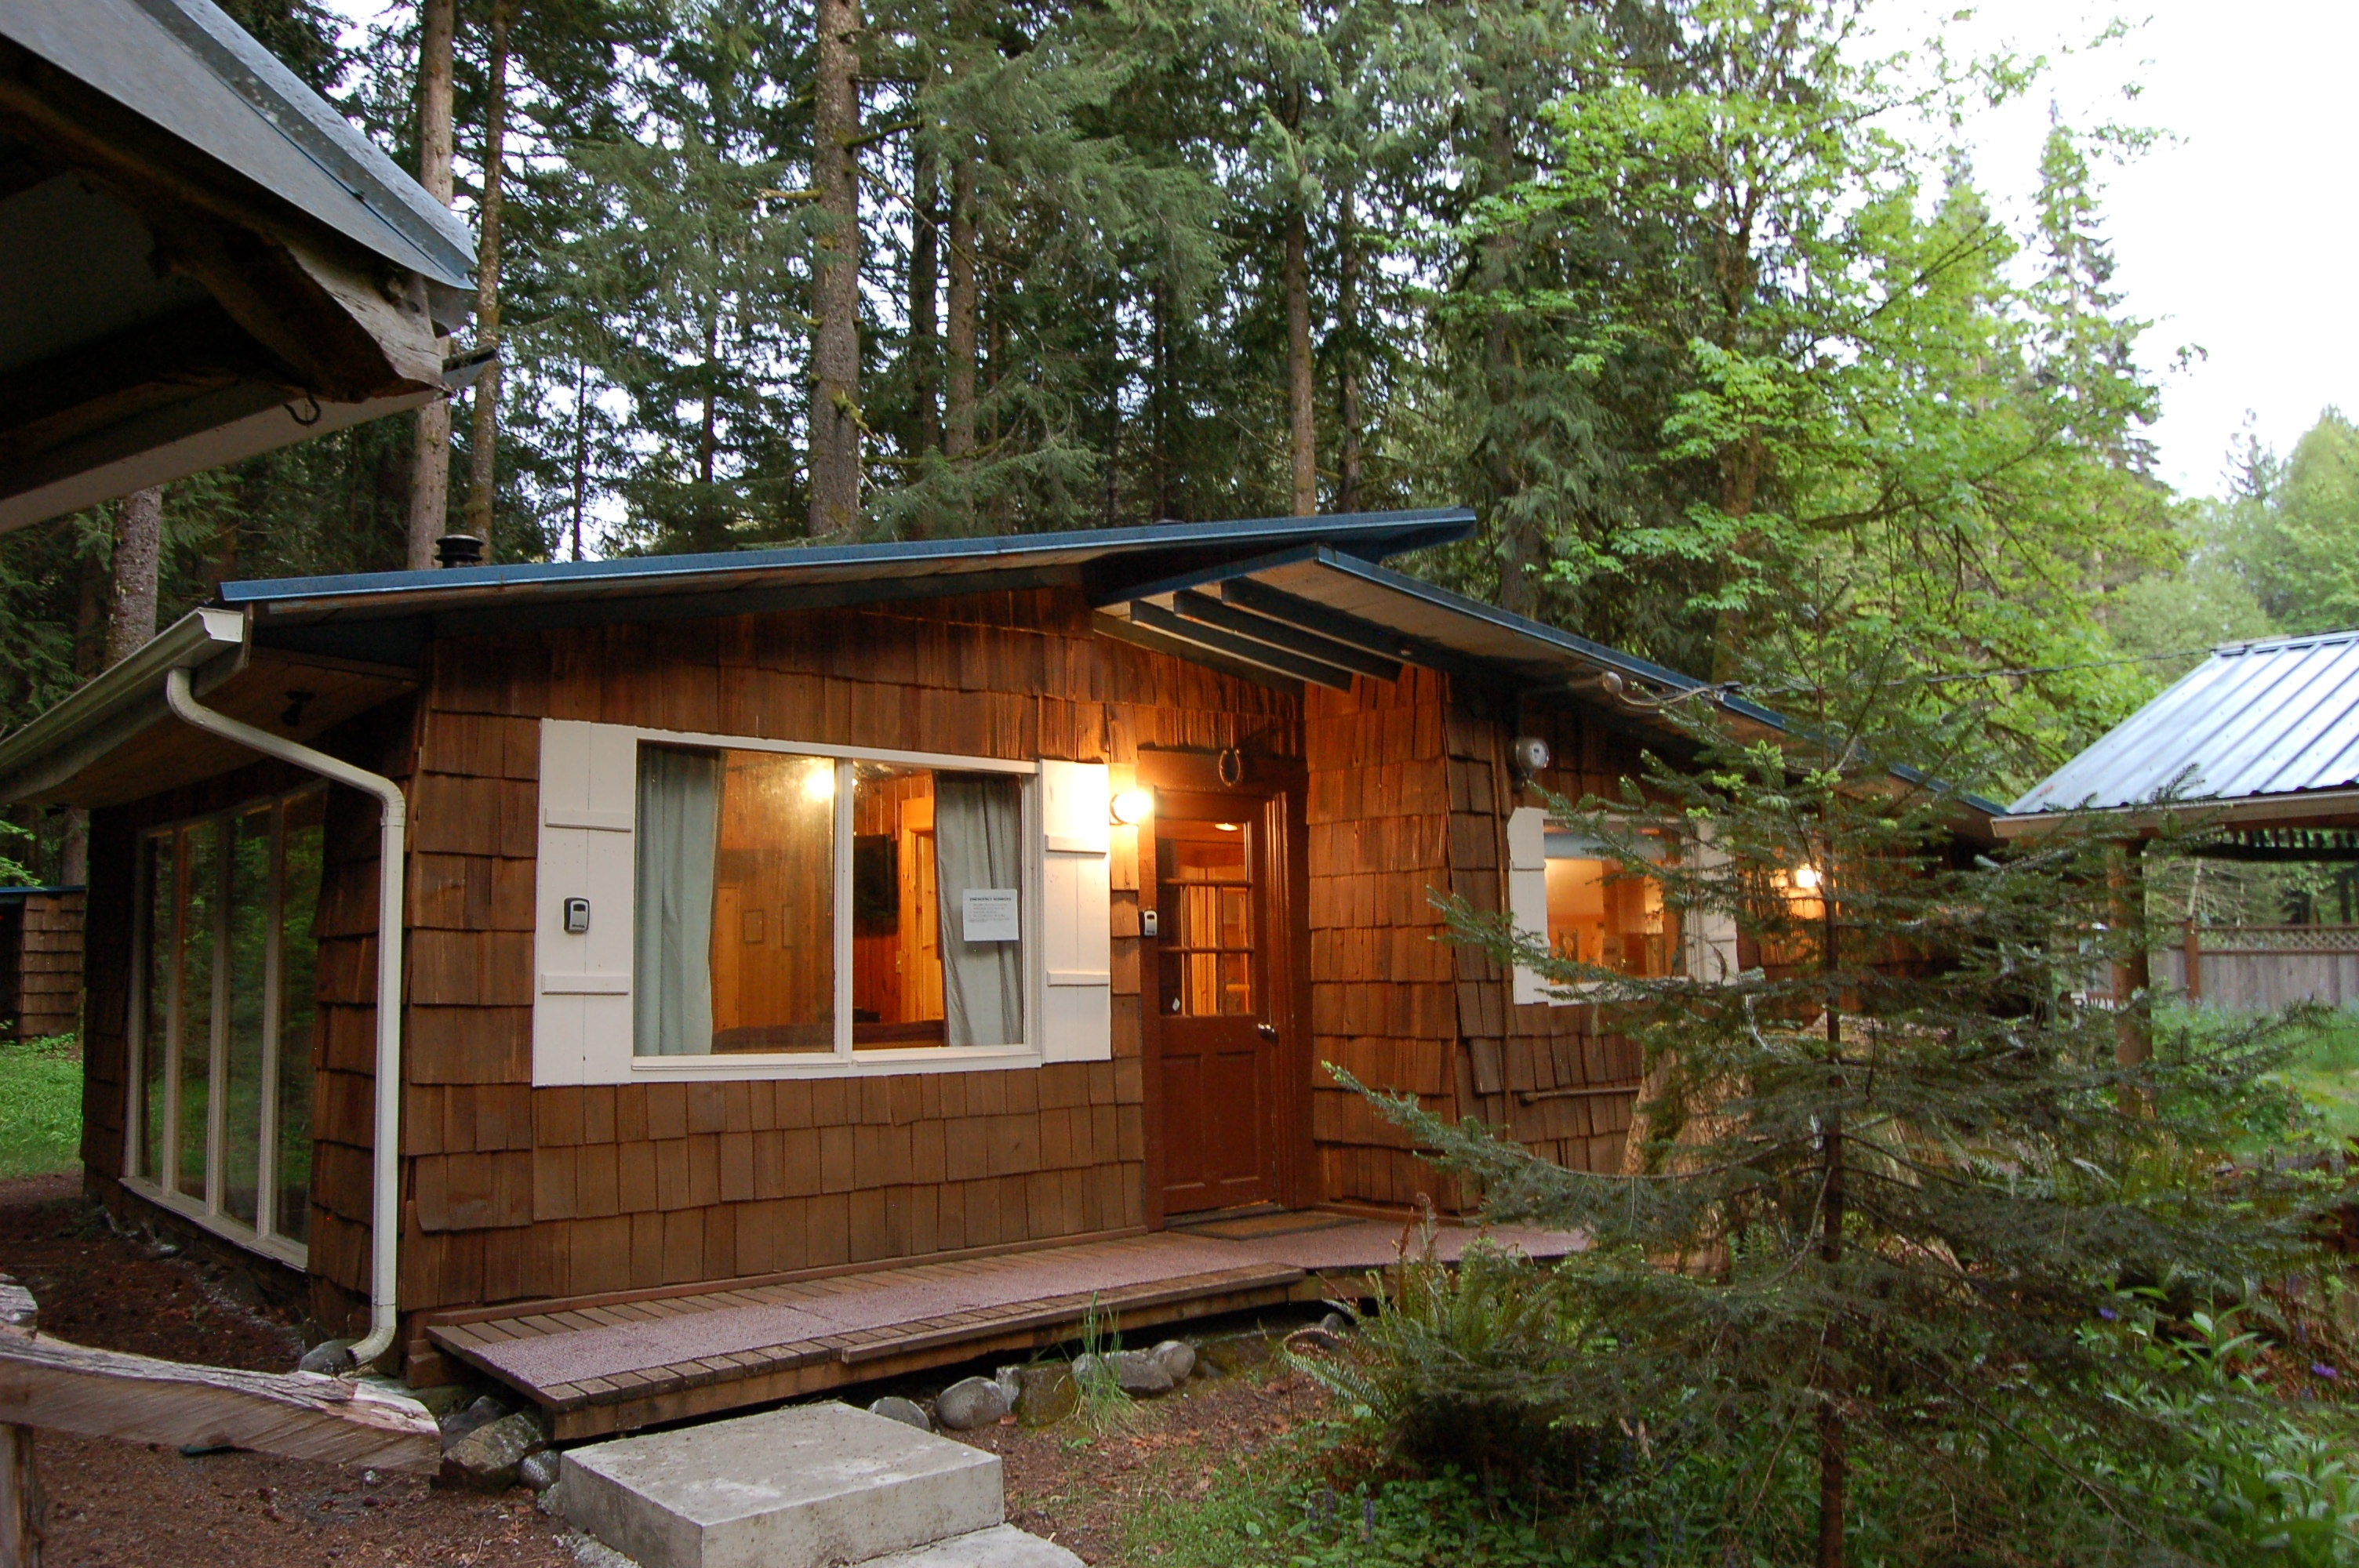 rainier extra small mountain a of vacation cabin while an ext rental almost your lily mt queen the kind available is cabins at specials paradise new has montana one suit rentals size bed this needs to